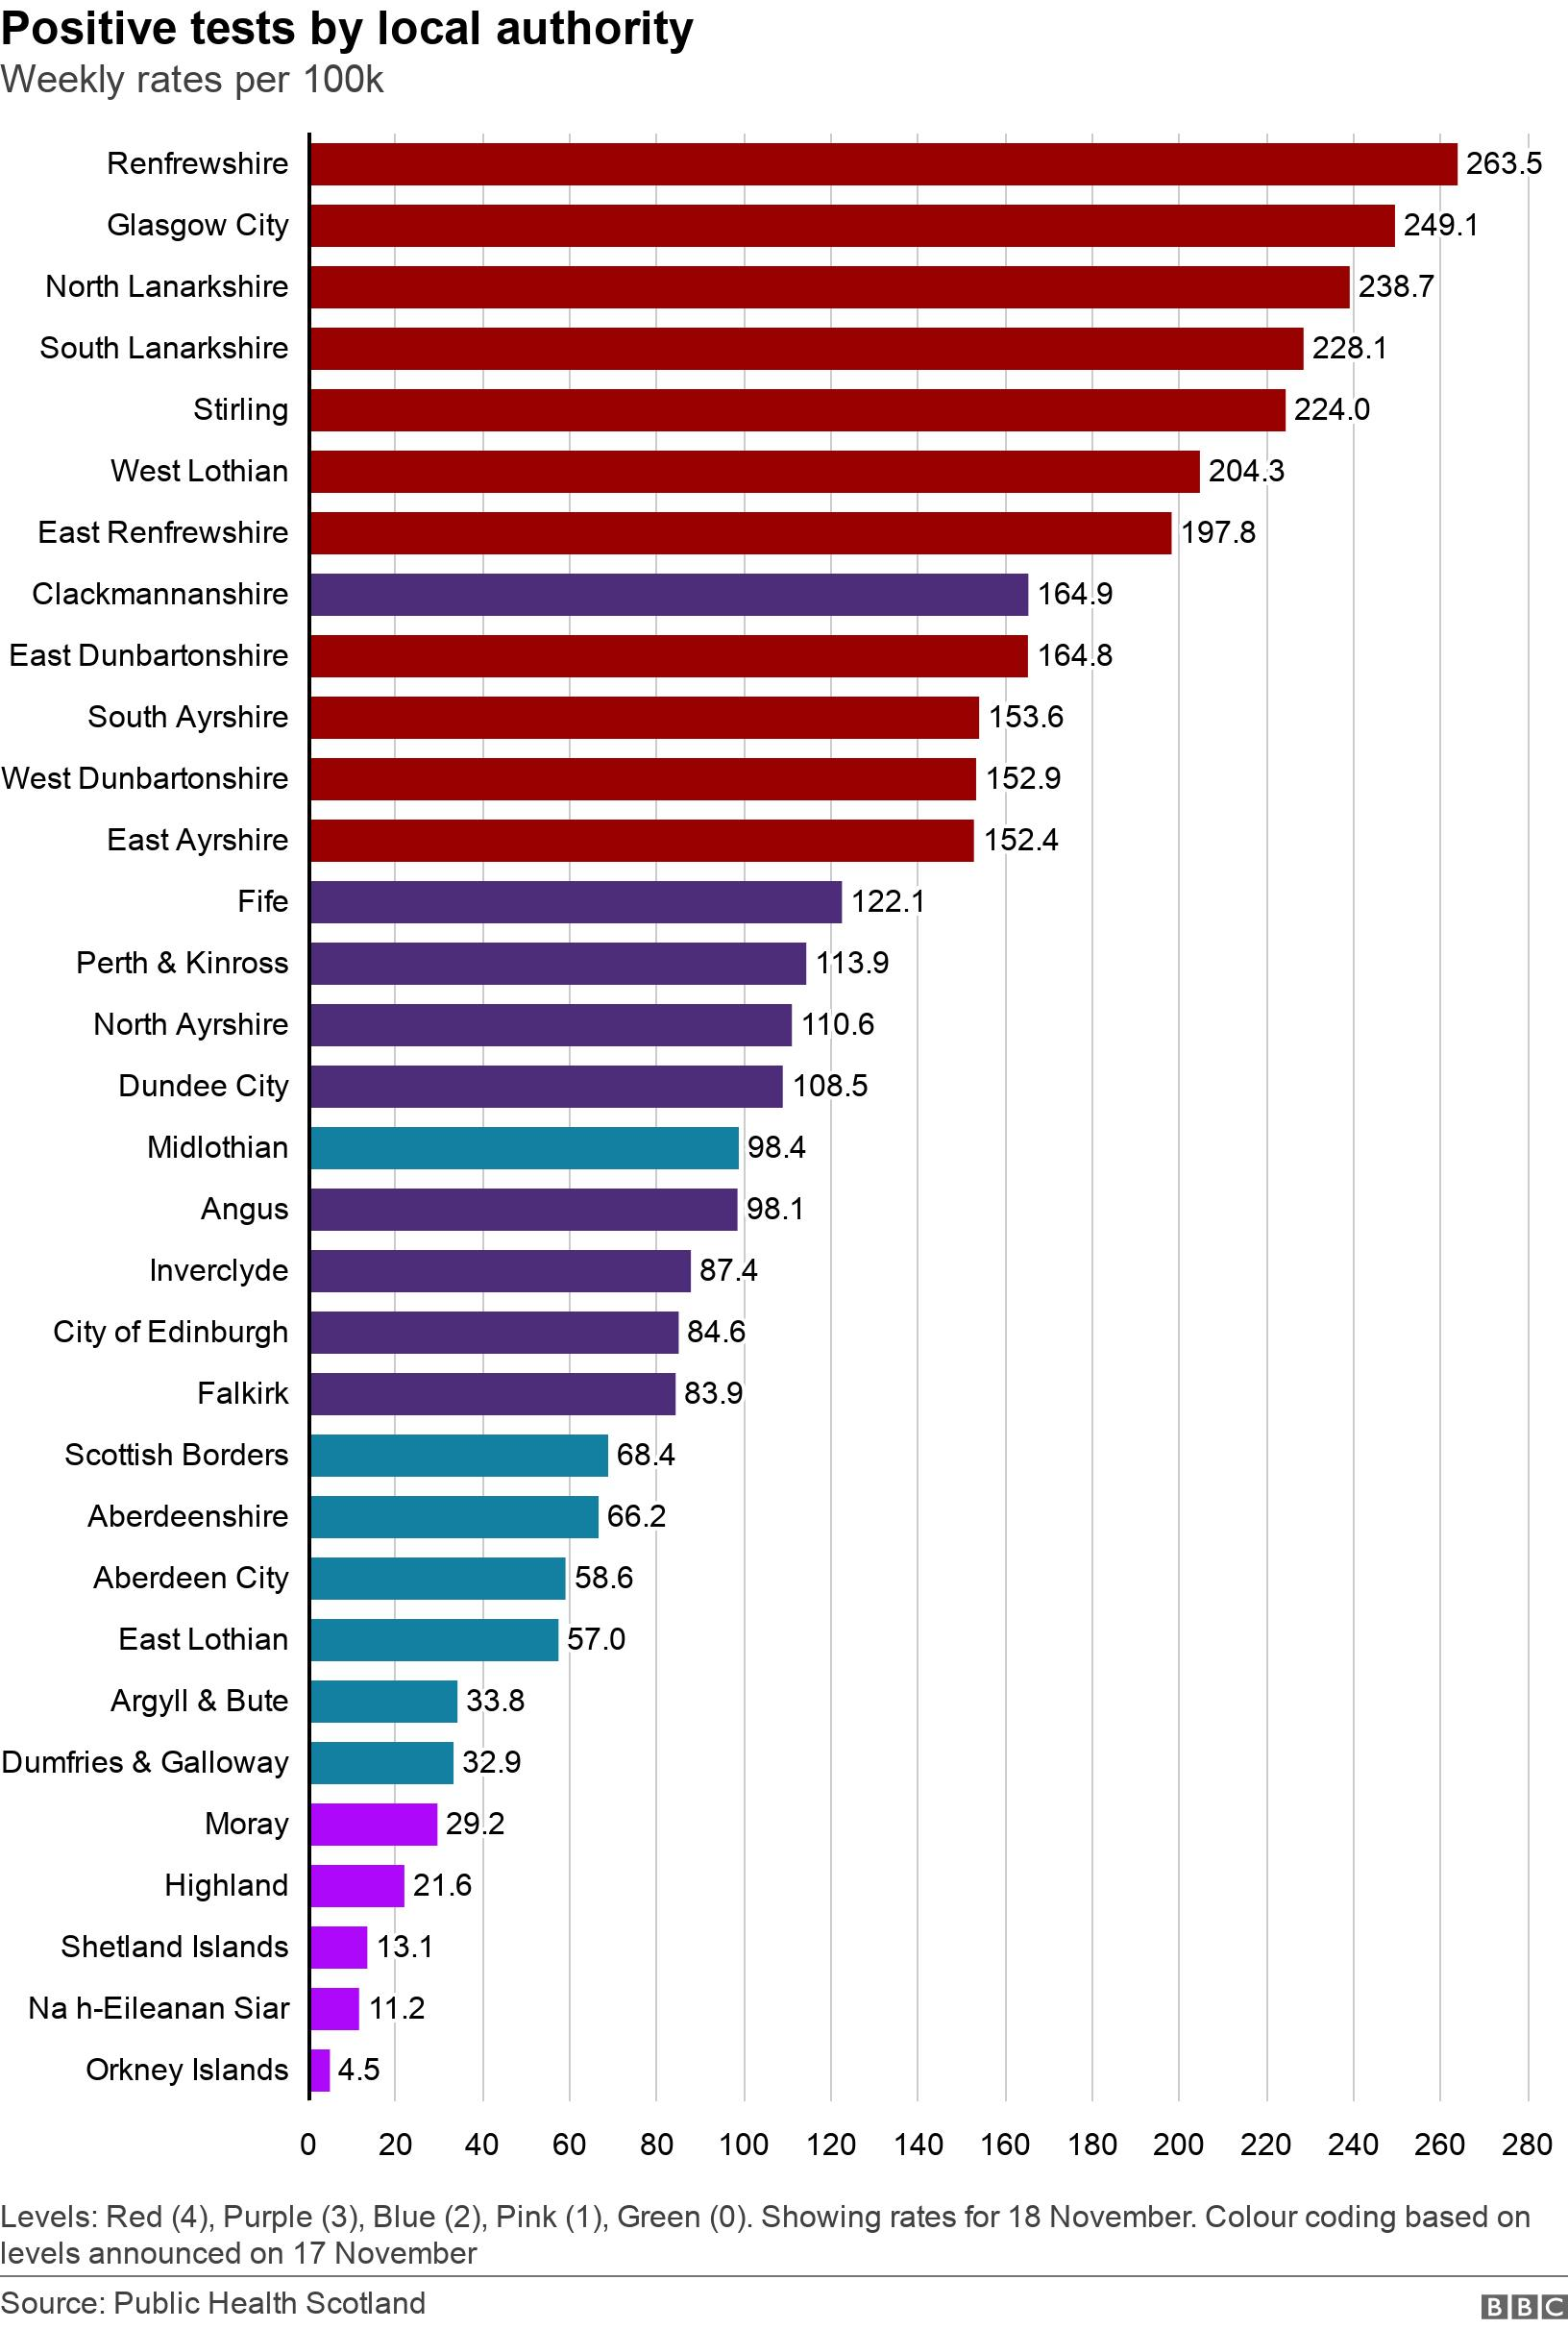 Positive tests by local authority. Weekly rates per 100k.  Levels: Red (4), Purple (3), Blue (2), Pink (1), Green (0). Showing rates for 14 November. Colour coding based on levels announced on 17 November.